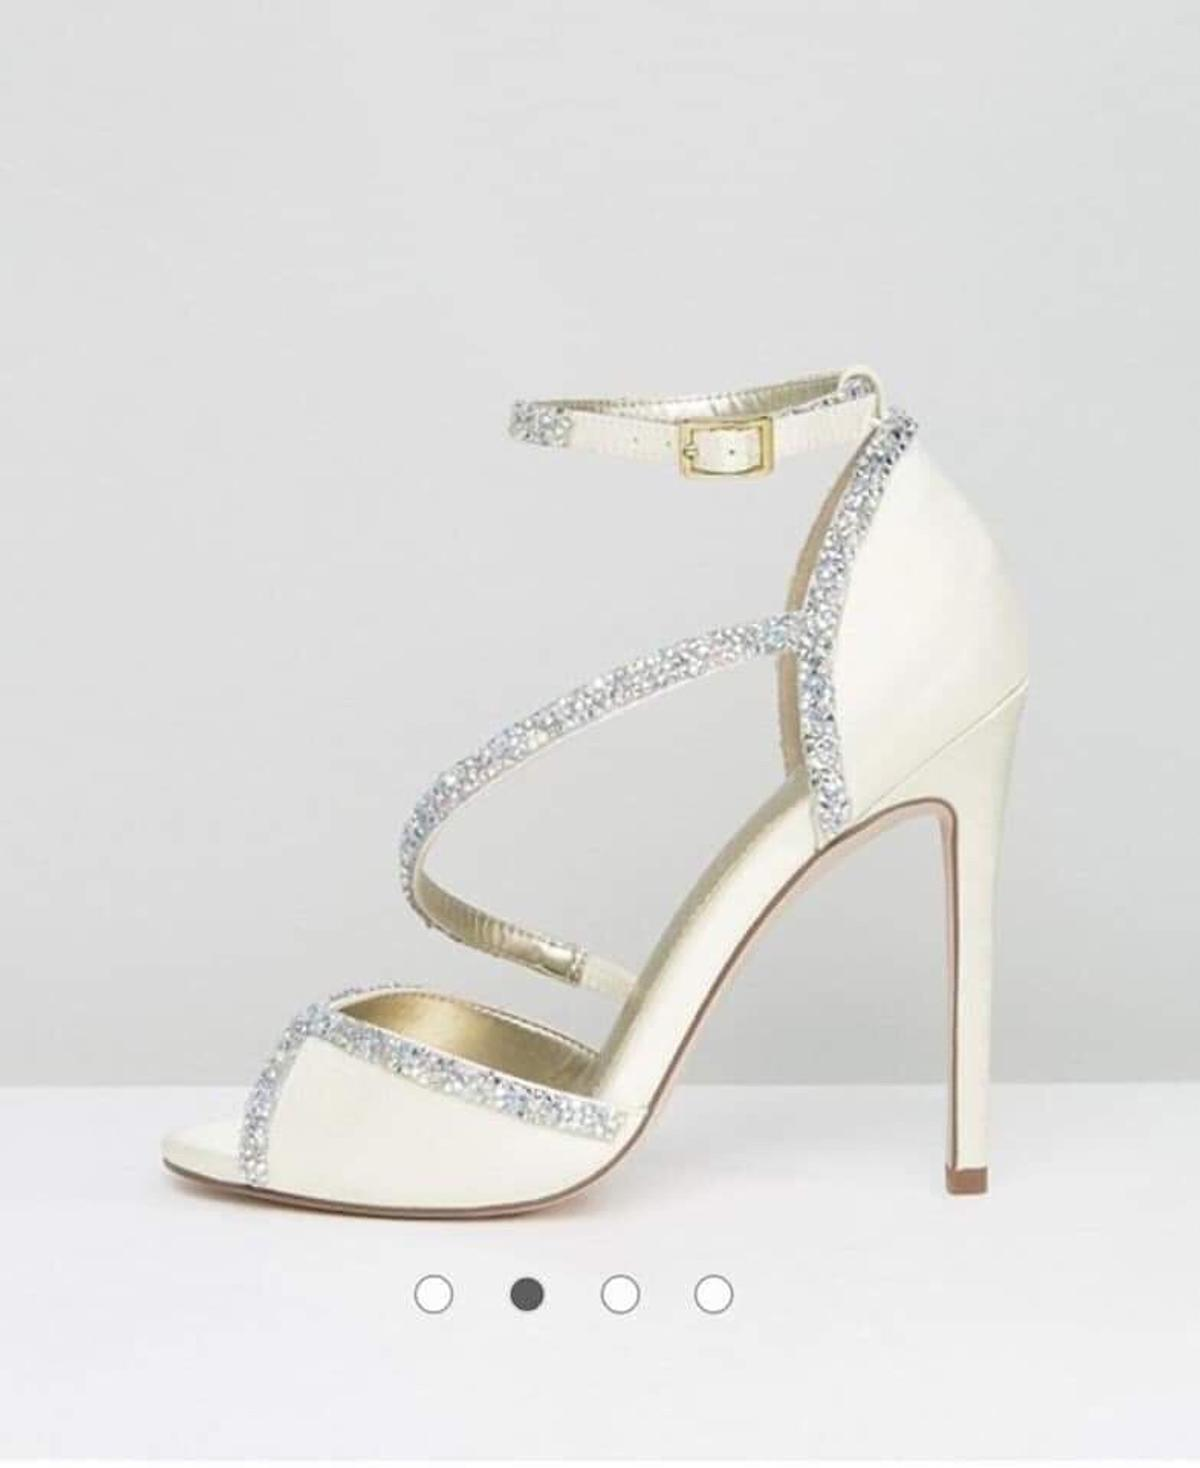 1054c7726d7 ASOS bridal shoes brand new size 5 in Doncaster for £25.00 for sale ...